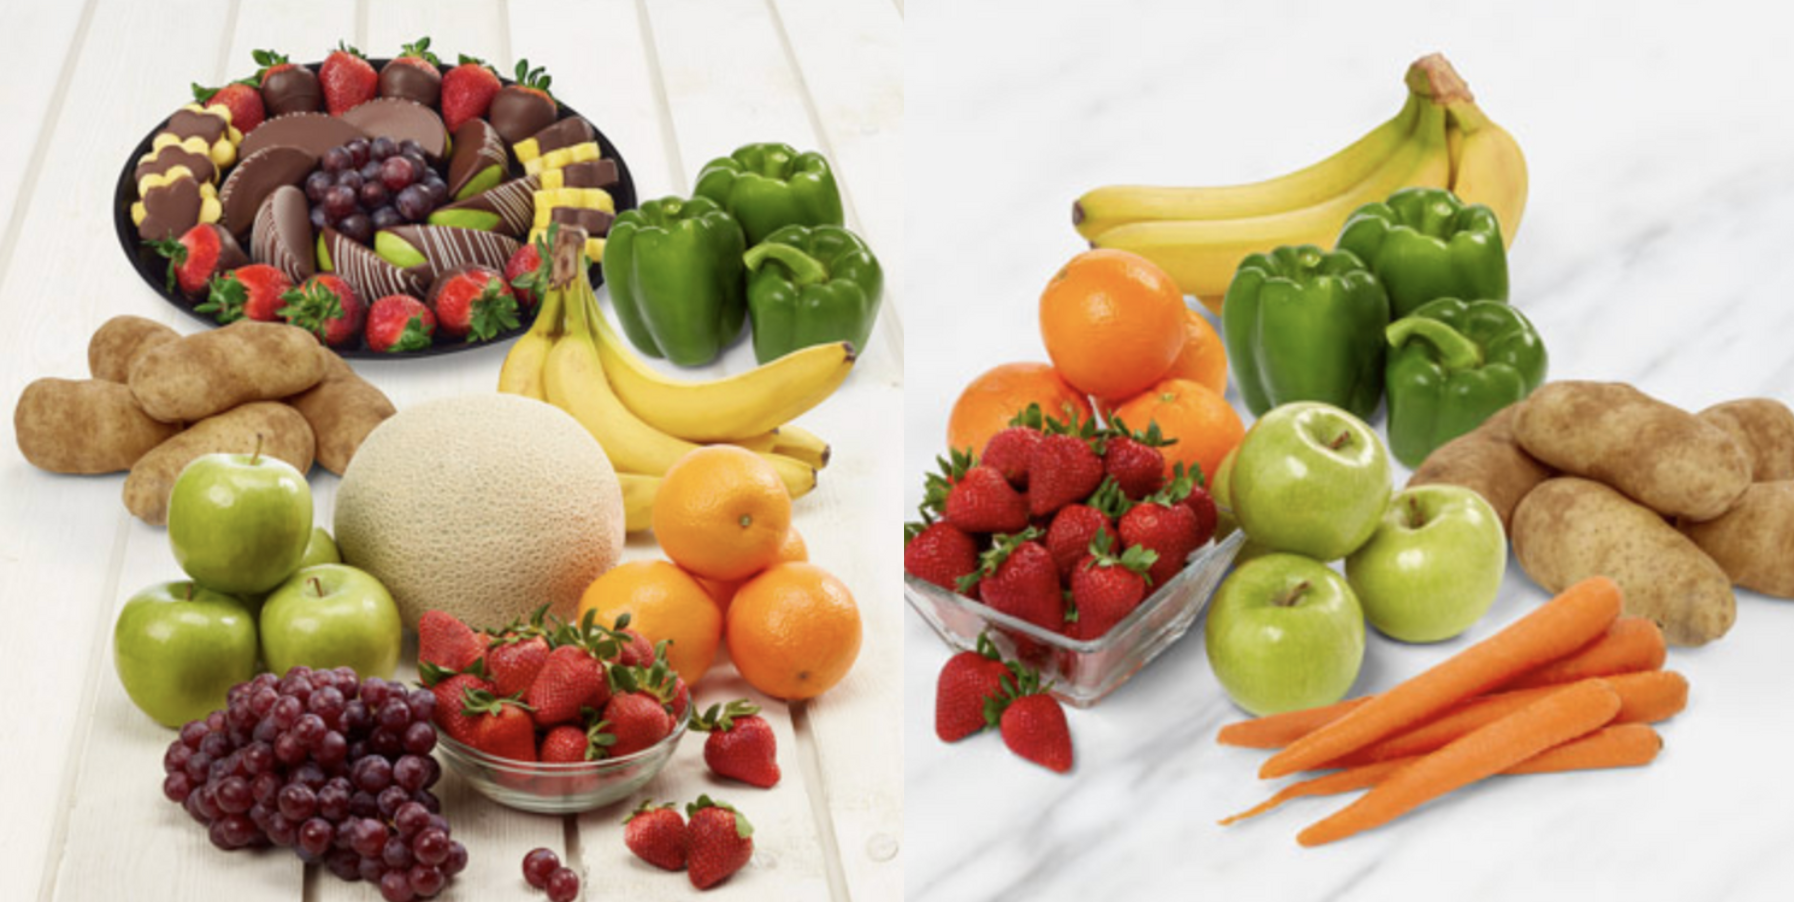 Edible Arrangements Will Deliver You Fresh Produce Boxes